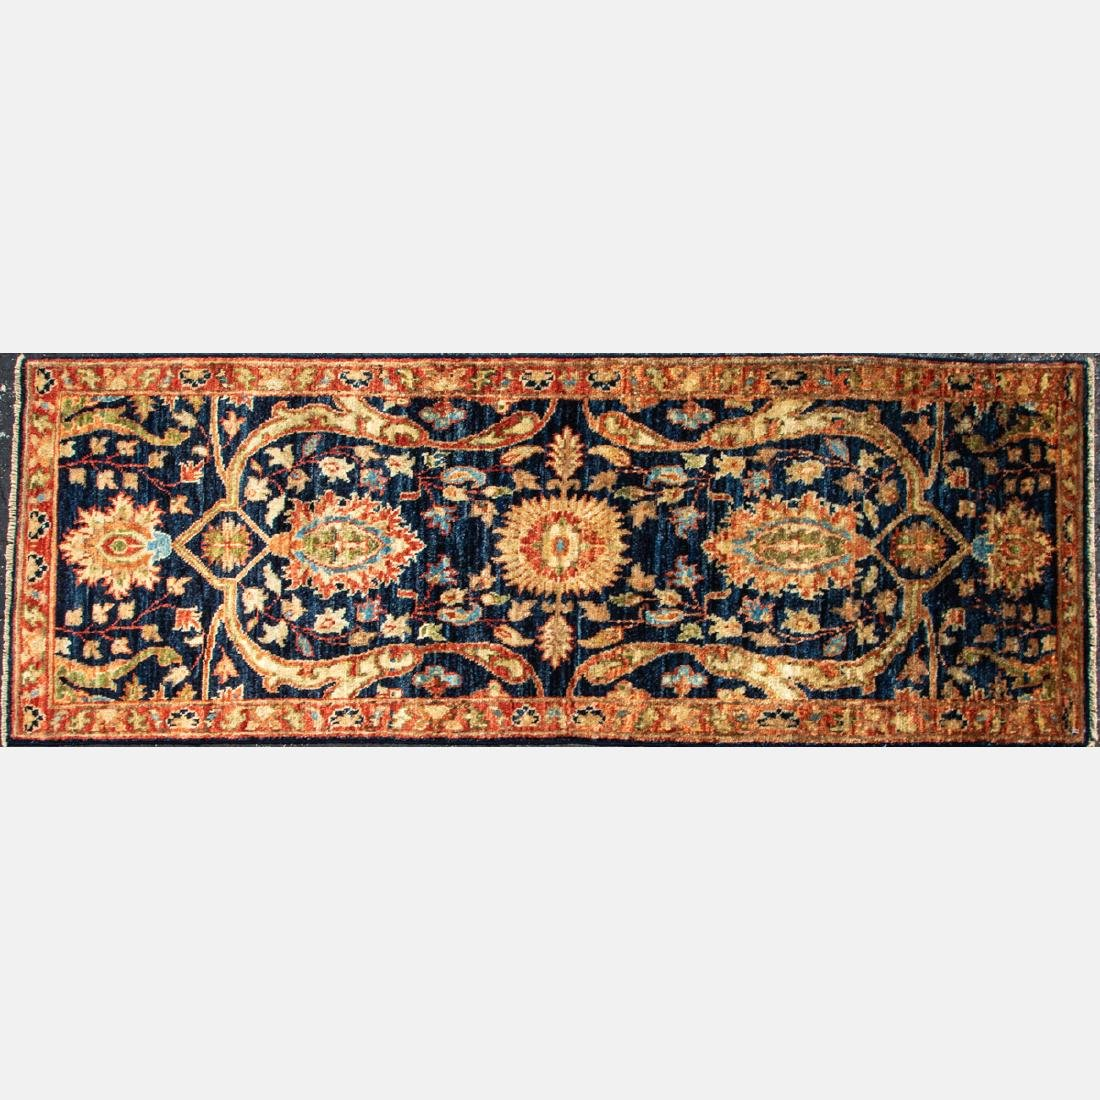 A Persian Tabriz Wool Runner, 20th Century.